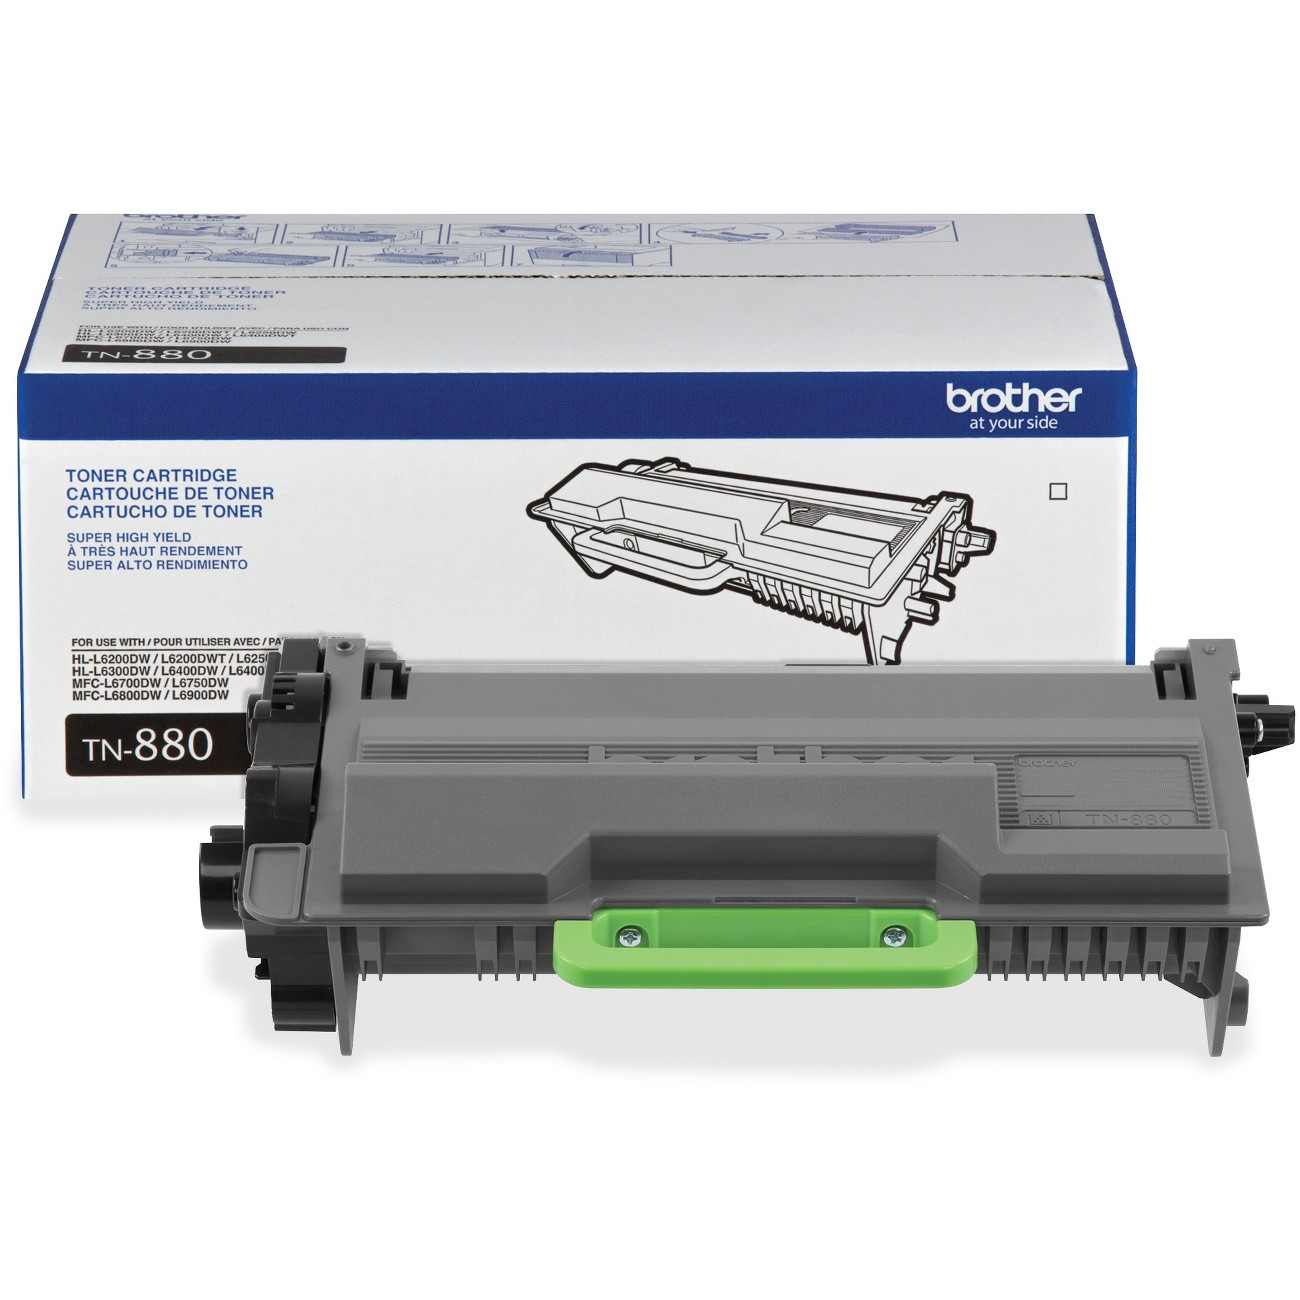 Brother TN880 Tn880 Super High-Yield Toner, Black